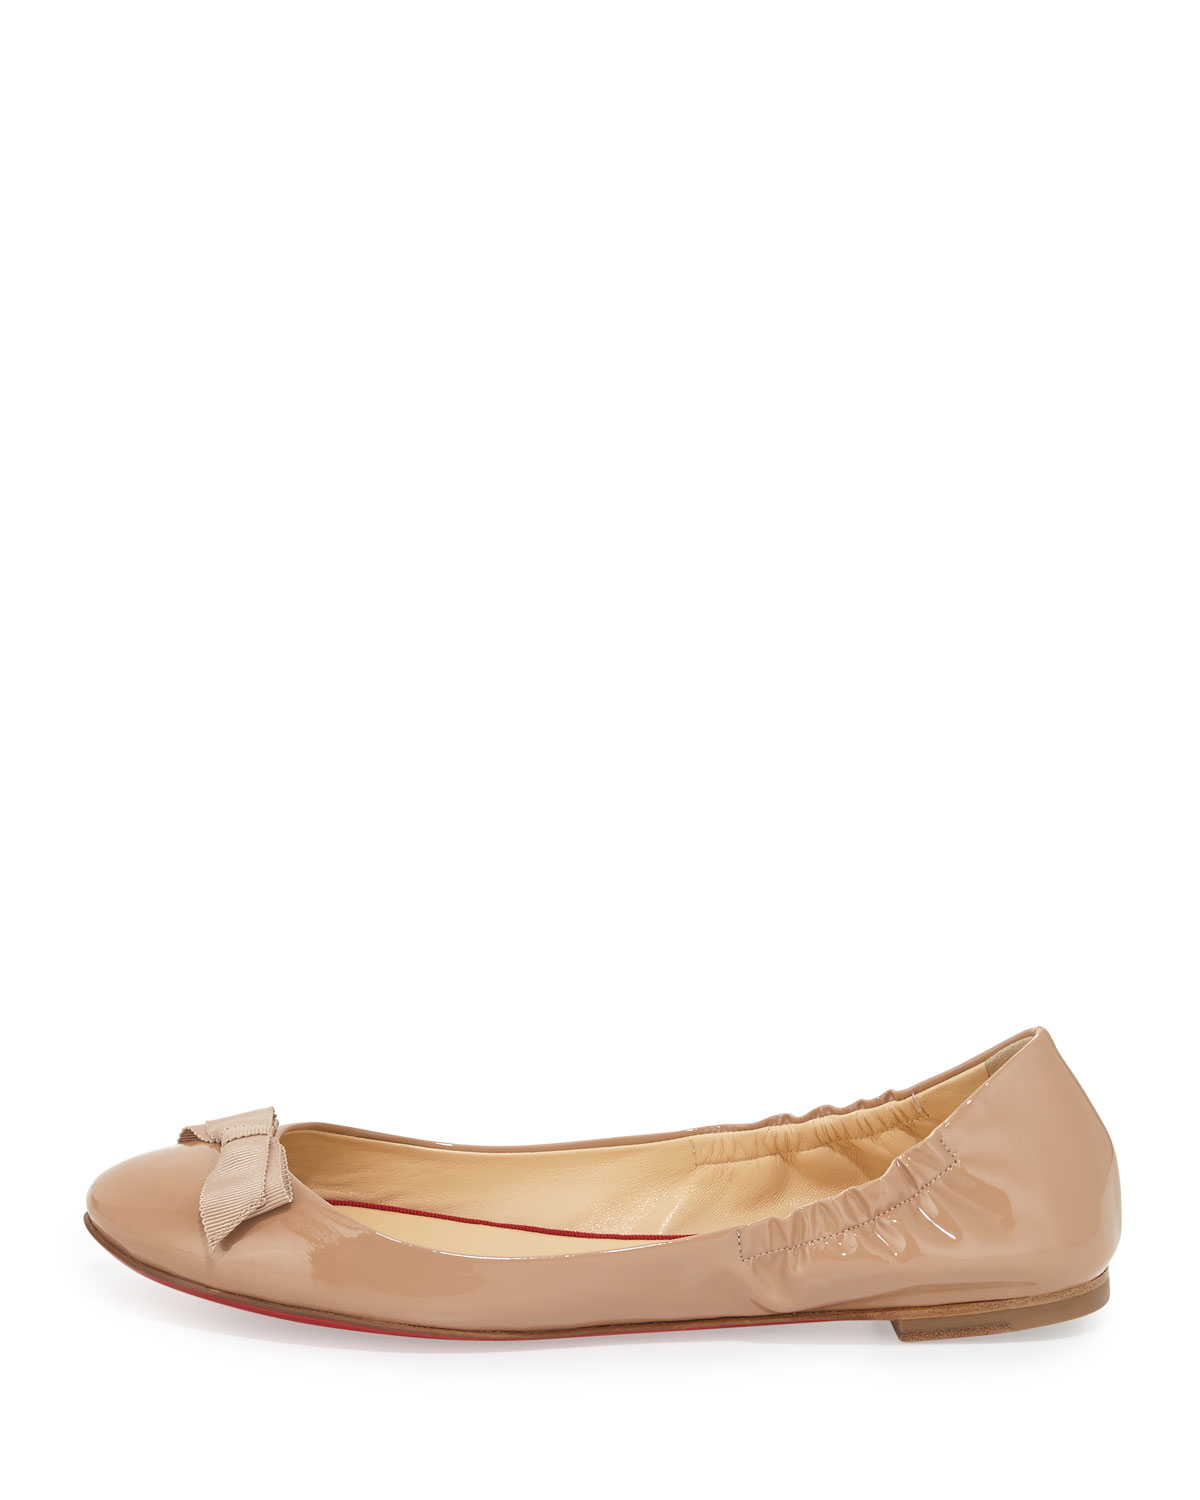 Peony Design ? christian louboutin patent leather bow ballet flats